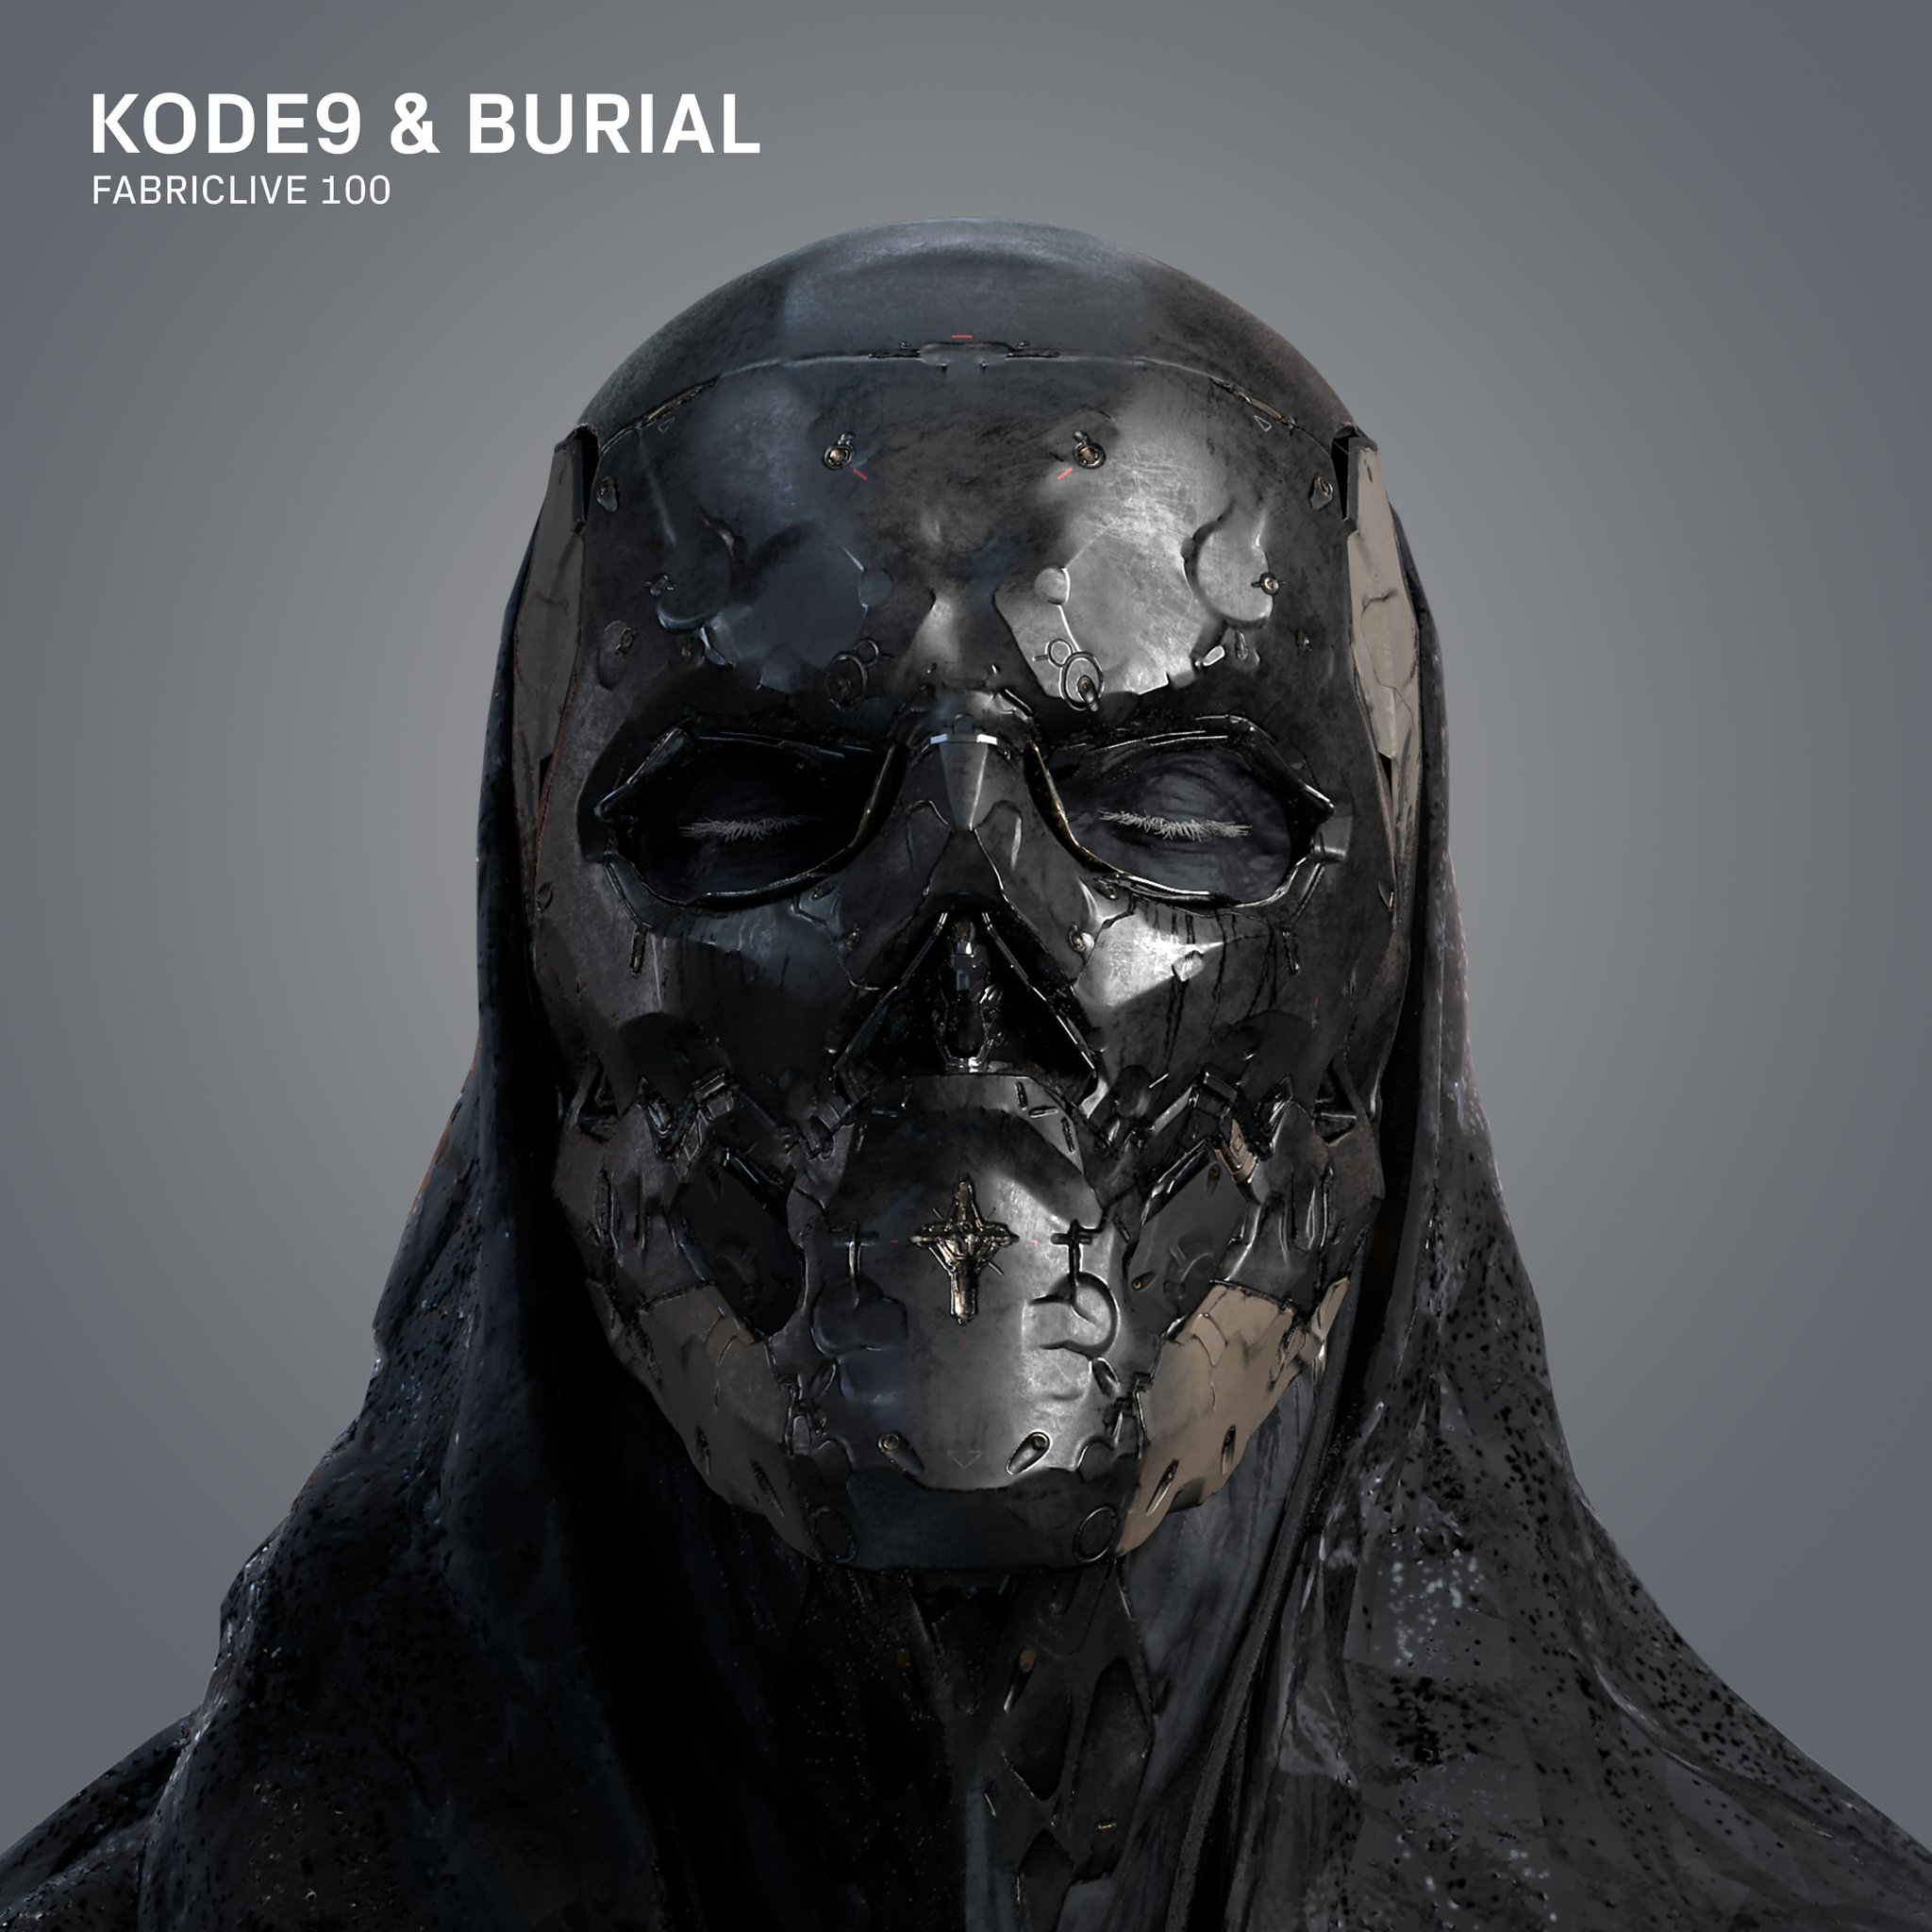 FabricLive: Kode9 and Burial